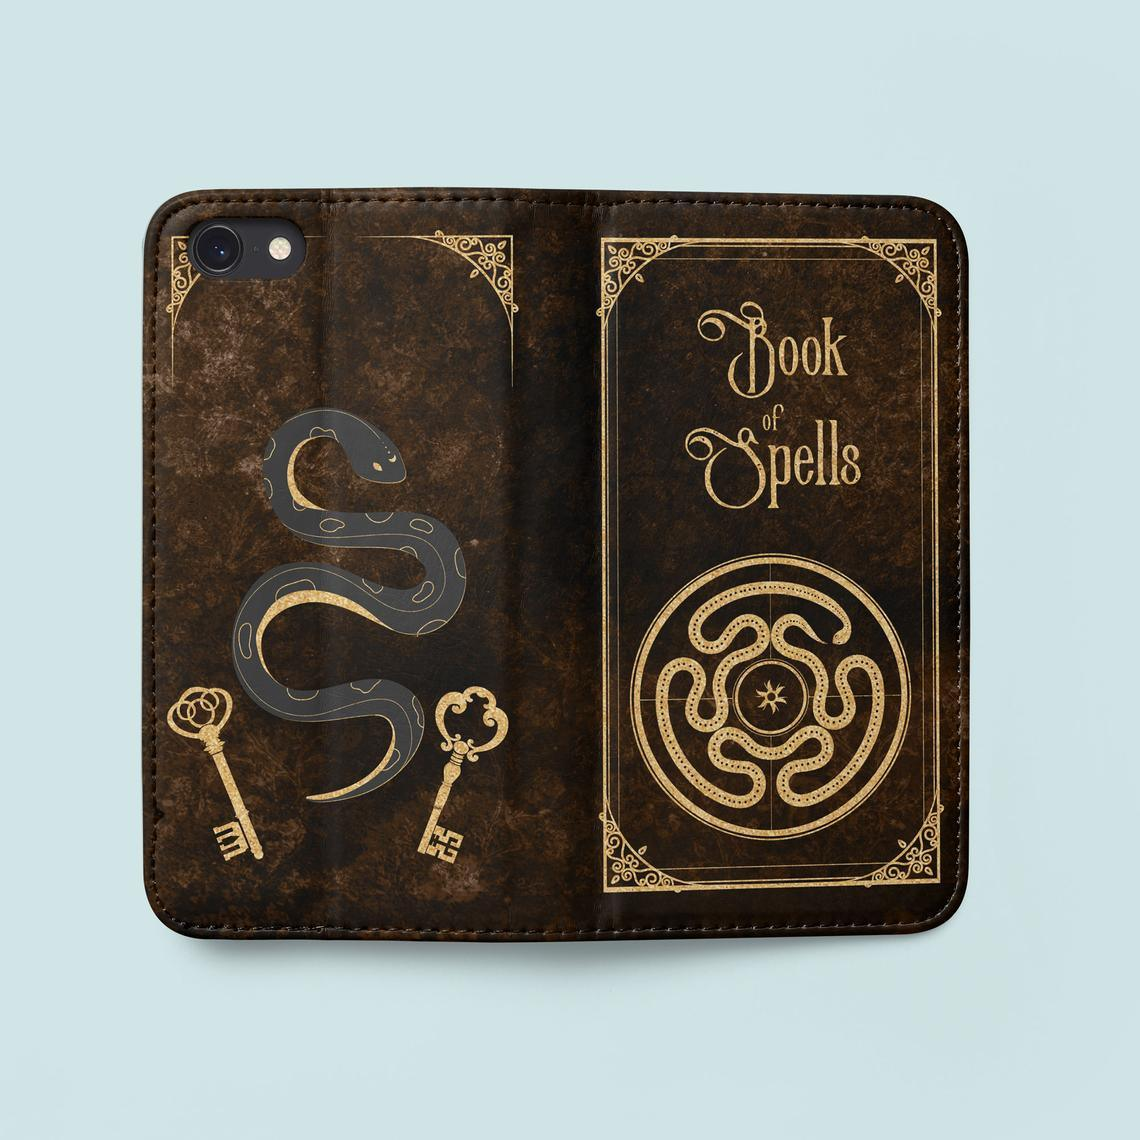 Hekate Strophalos Spell Book Phone Case